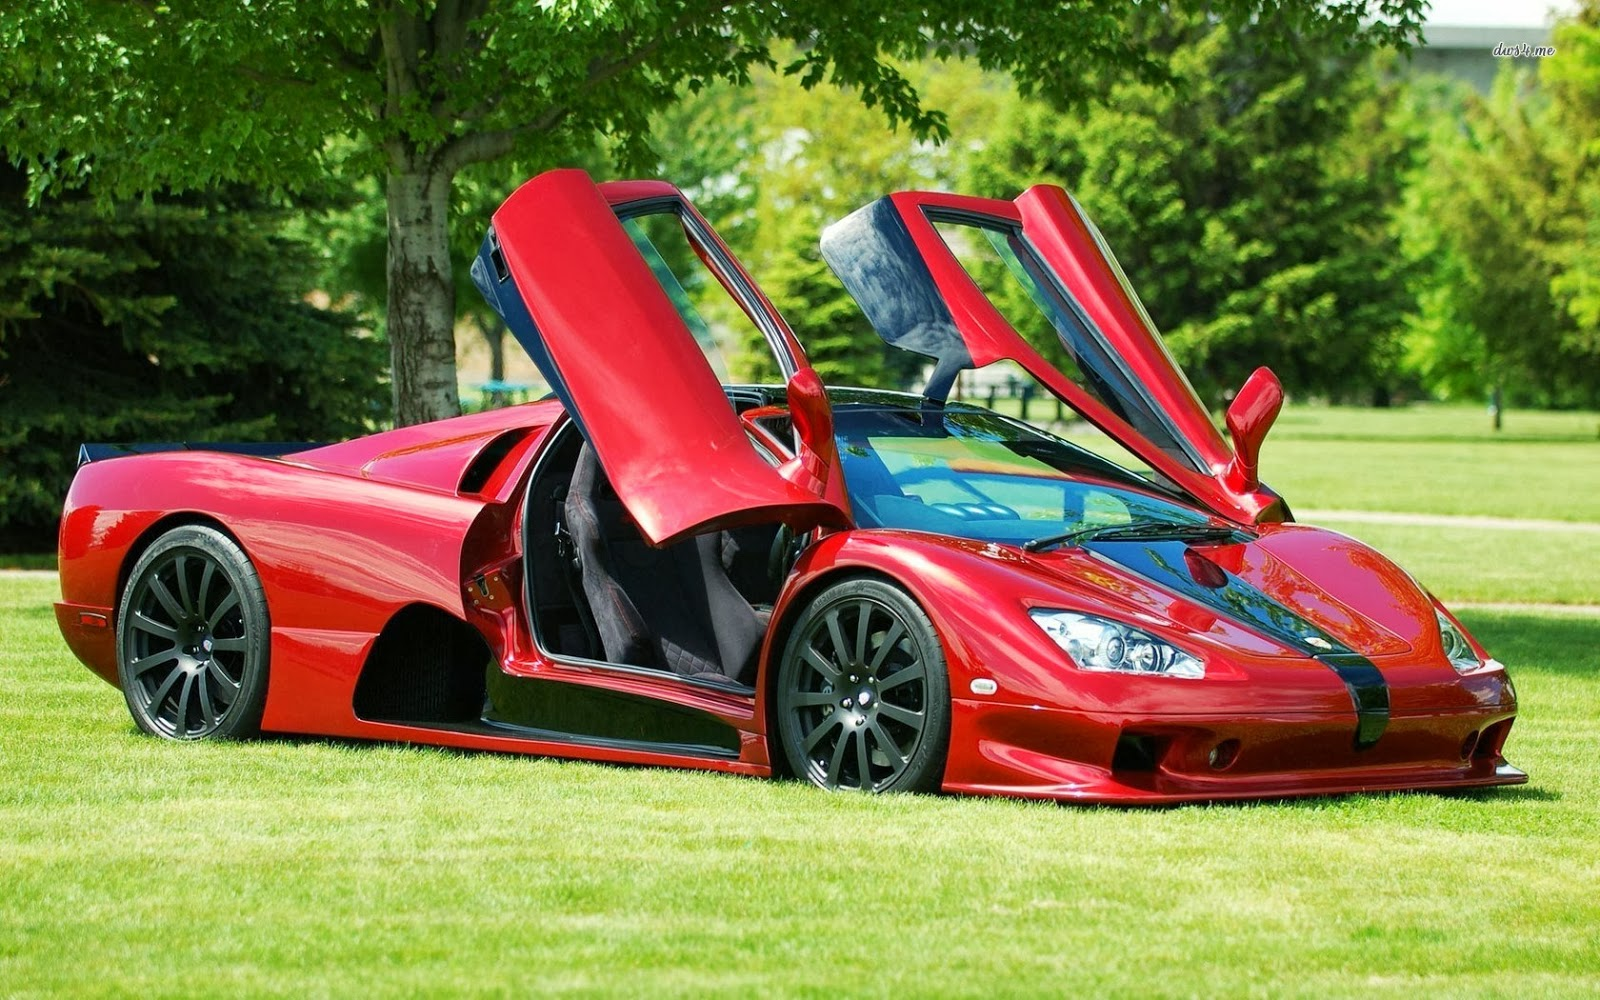 Ssc ultimate aero xt car pictures engine review sciox Choice Image